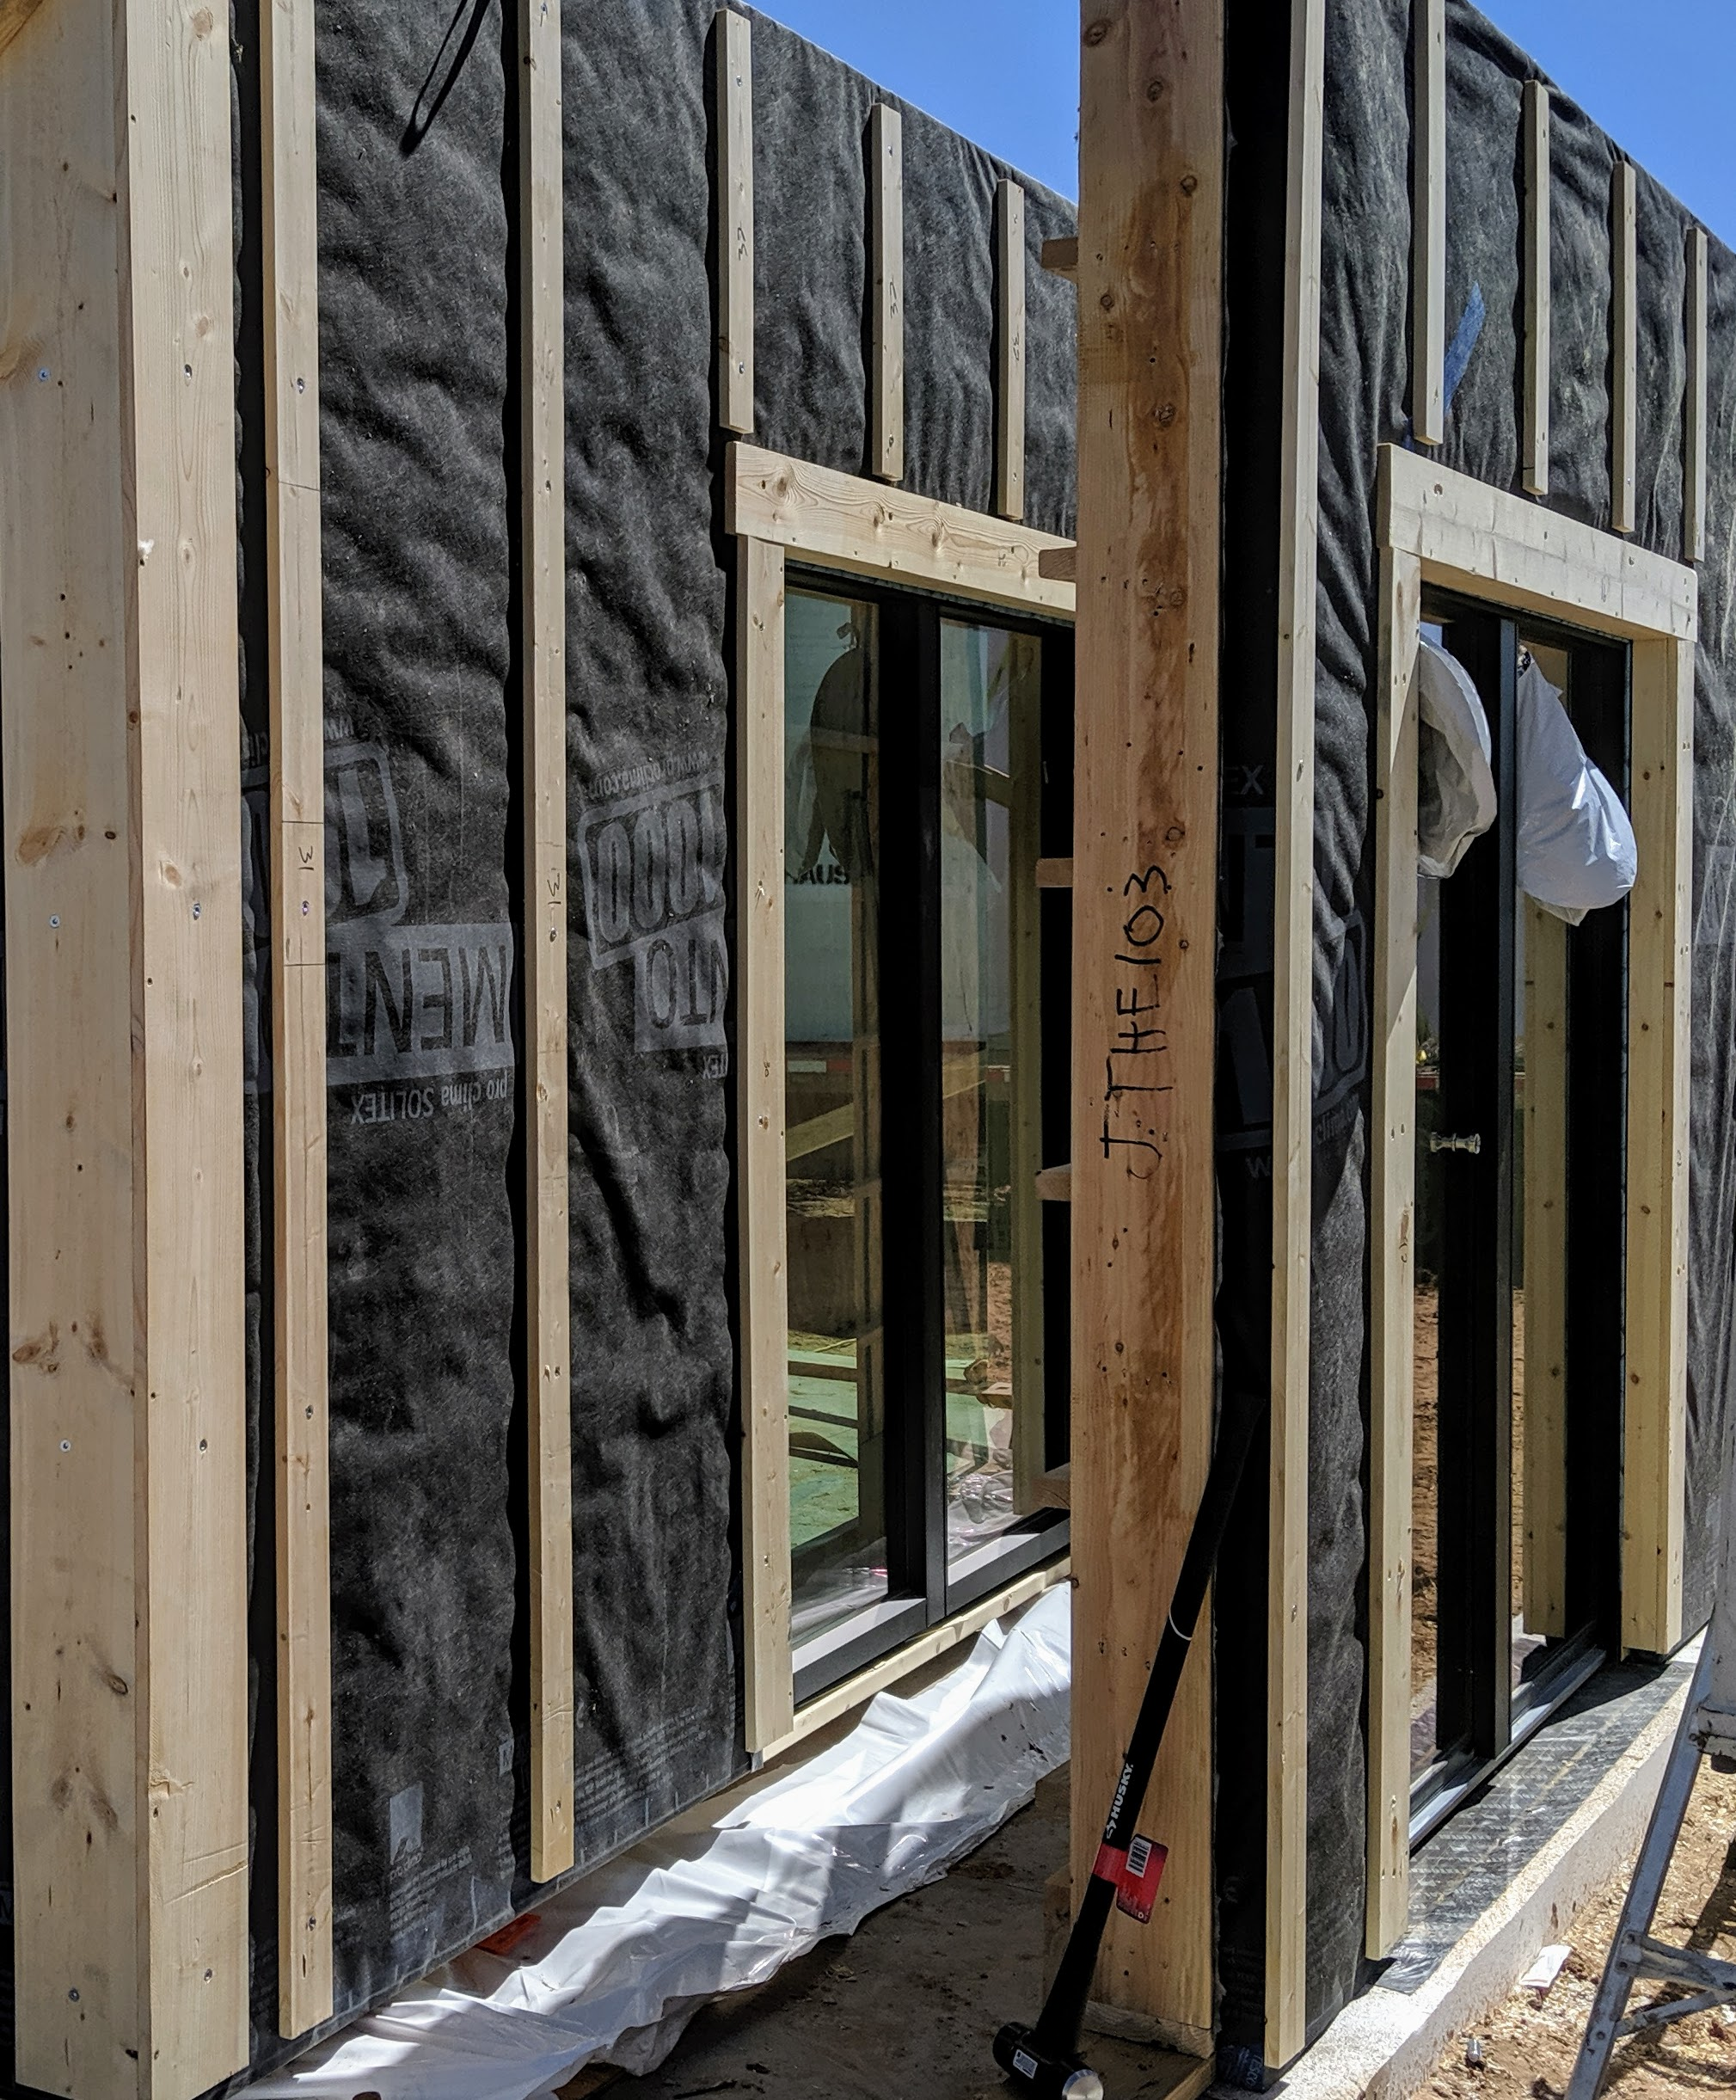 Upgrade to Wood Aluminum Clad Windows & Doors - Pre-installed, Triple-pane, Climate Adjusted for Climate, Made in the U.S.A.